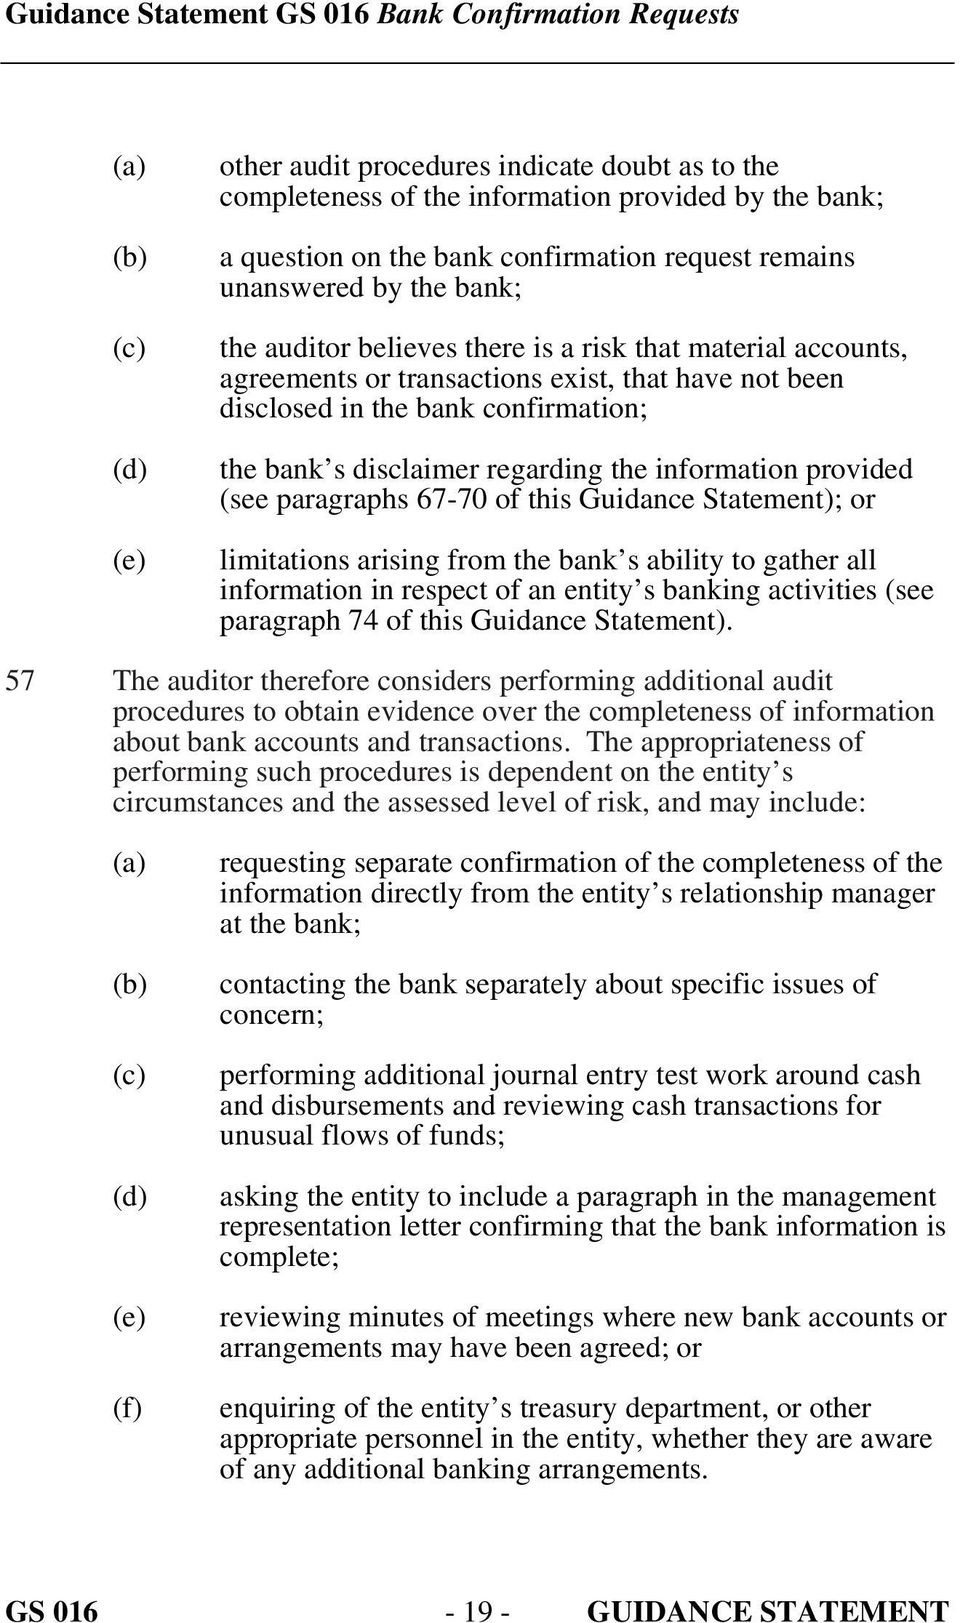 provided (see paragraphs 67-70 of this Guidance Statement); or limitations arising from the bank s ability to gather all information in respect of an entity s banking activities (see paragraph 74 of